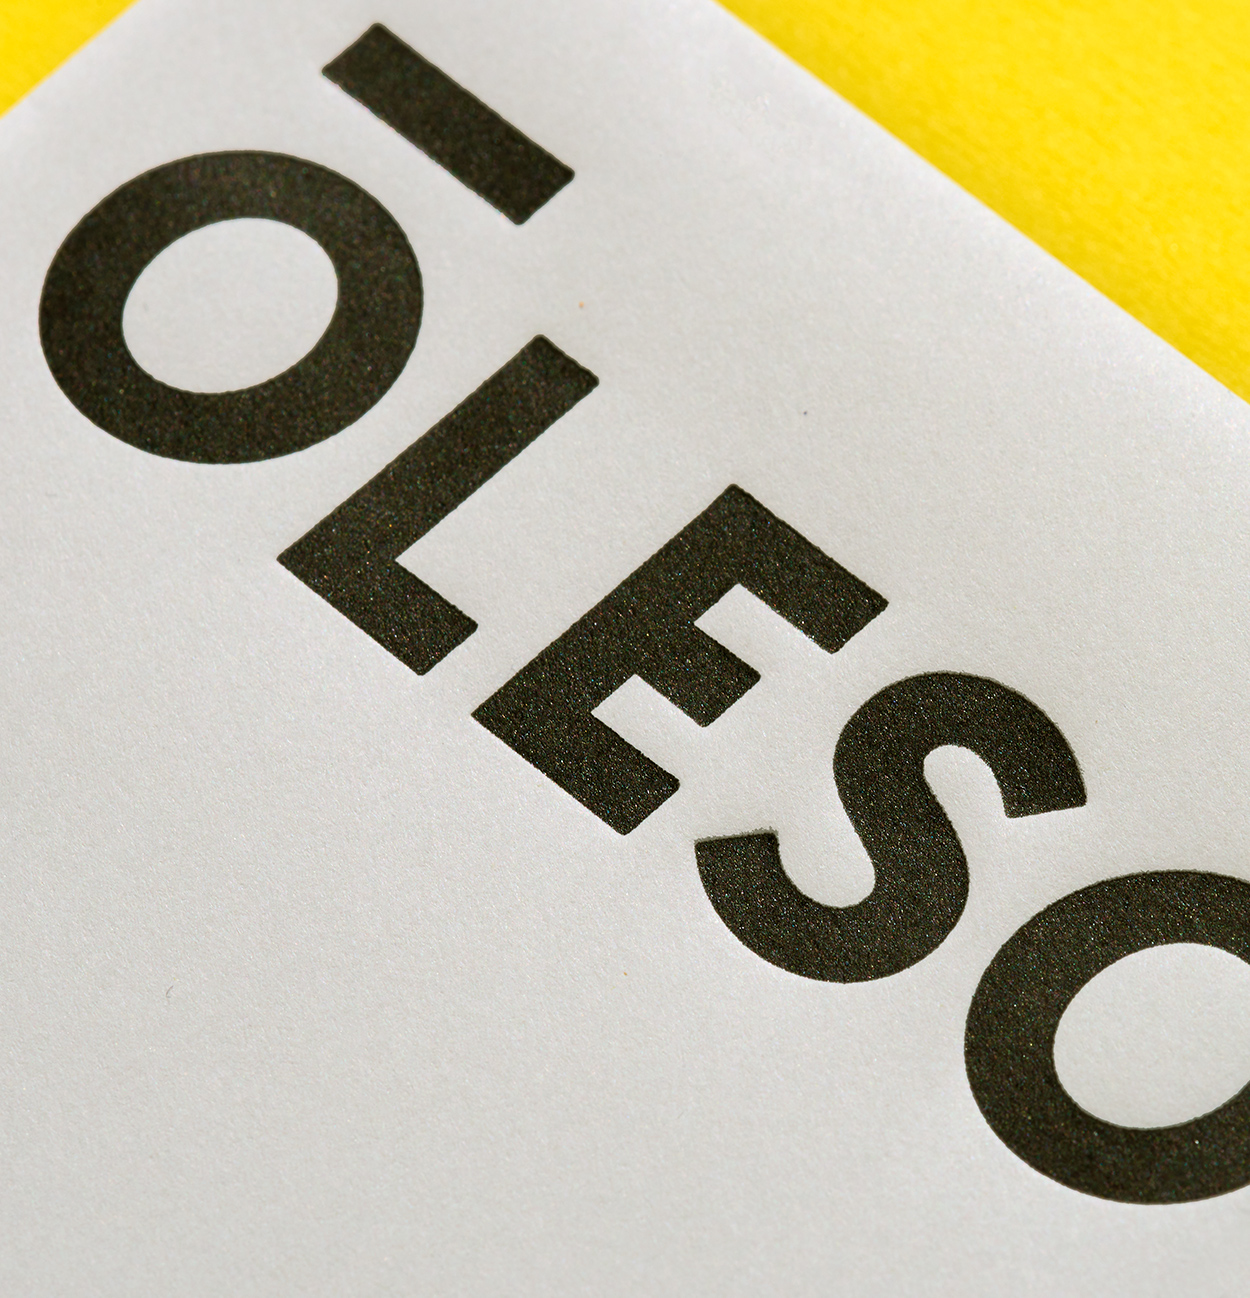 John Oleson identity design by Abby Haddican at Werner Design Werks.